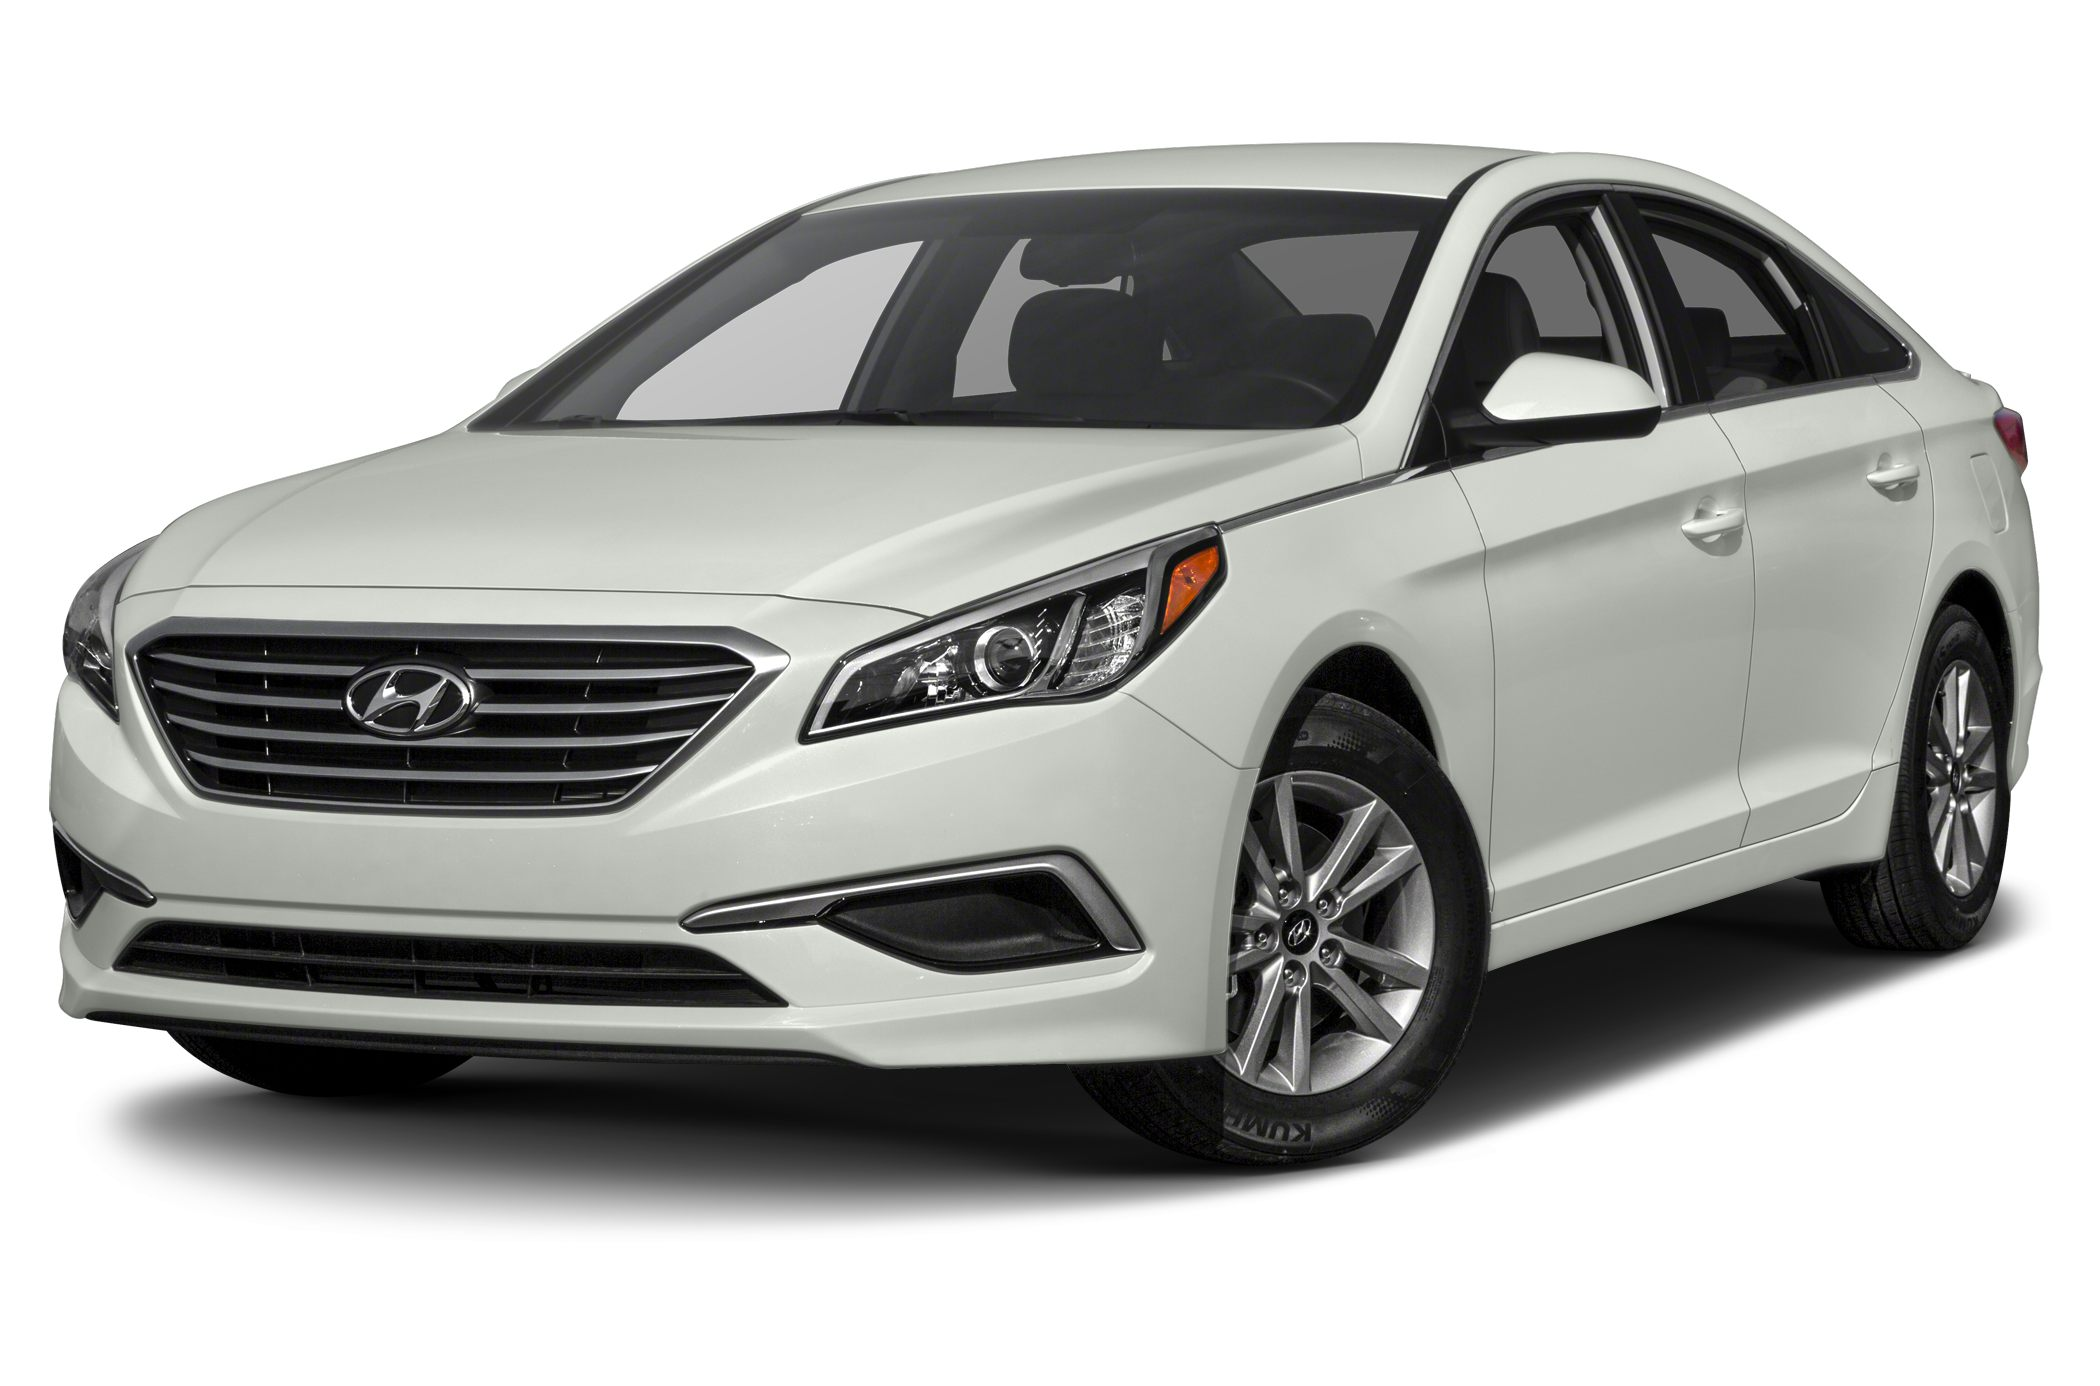 2016 Hyundai Sonata Pricing And Specs